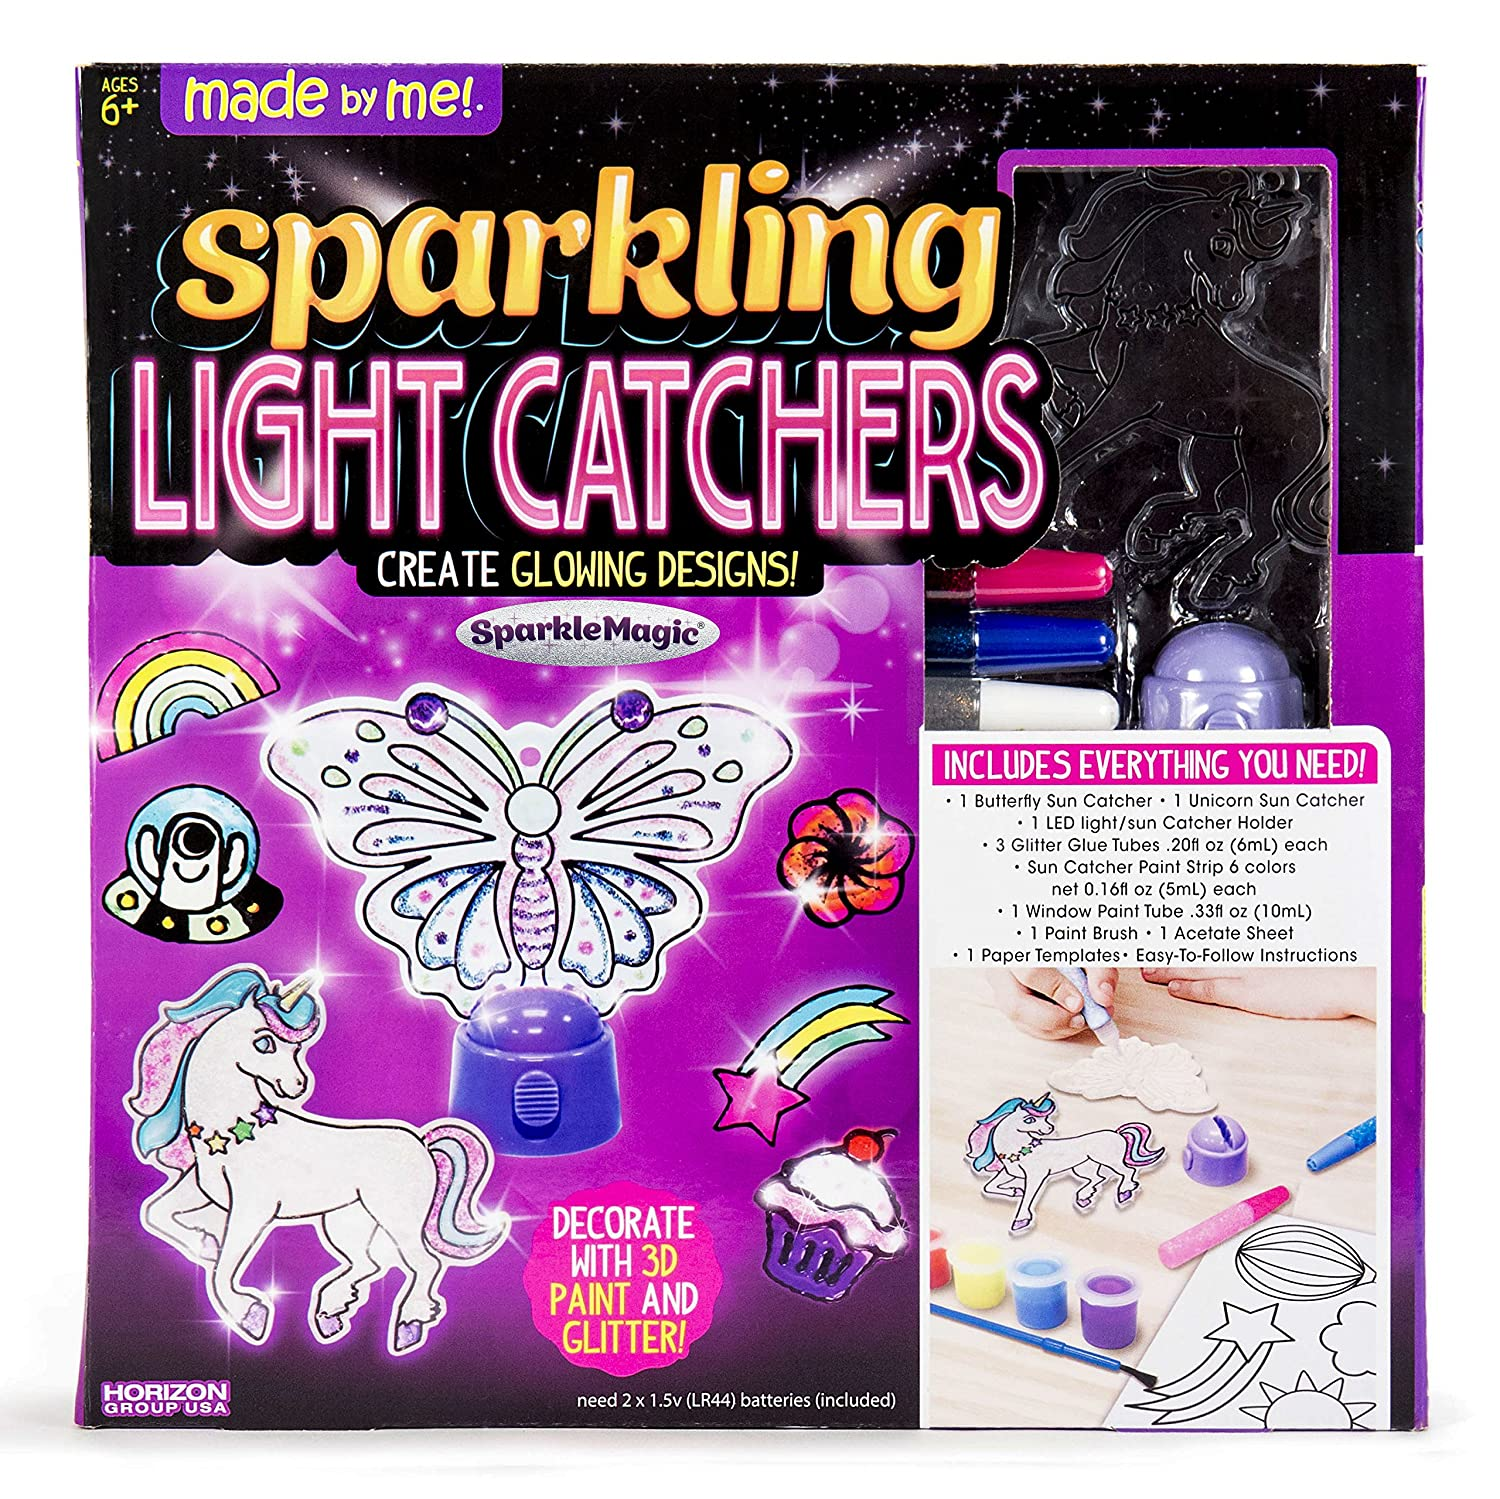 Made By Me Sparkling Light Catchers by Horizon Group USA Light Catcher